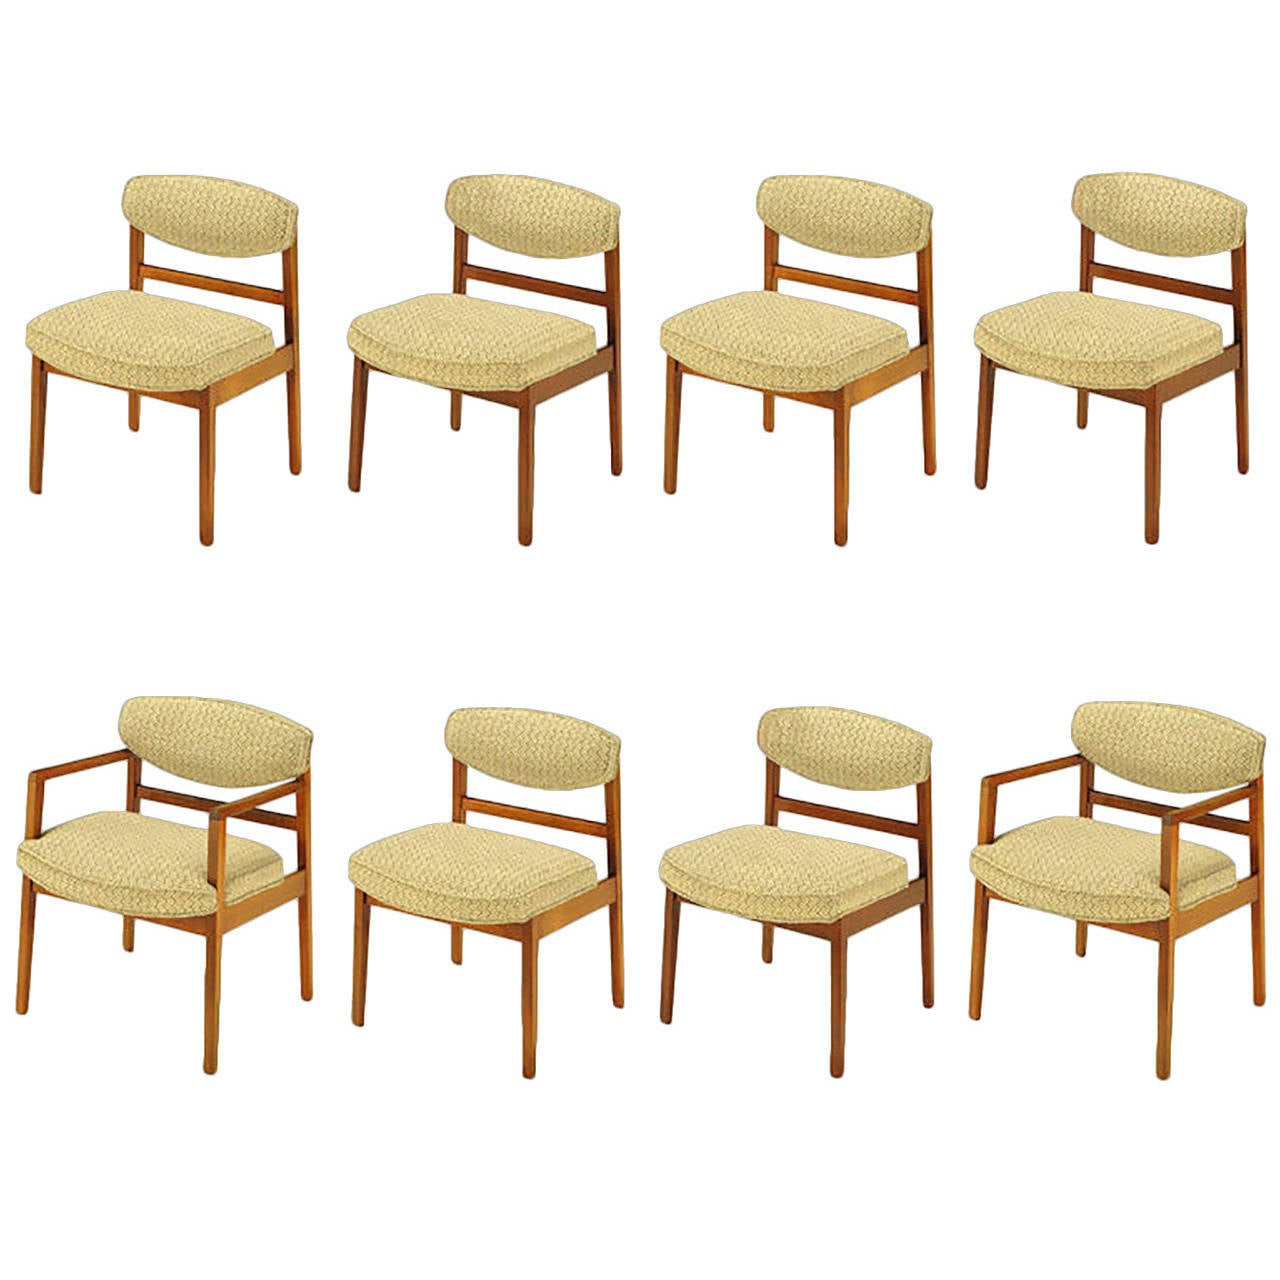 Eight George Nelson For Herman Miller Teak Dining Chairs 1